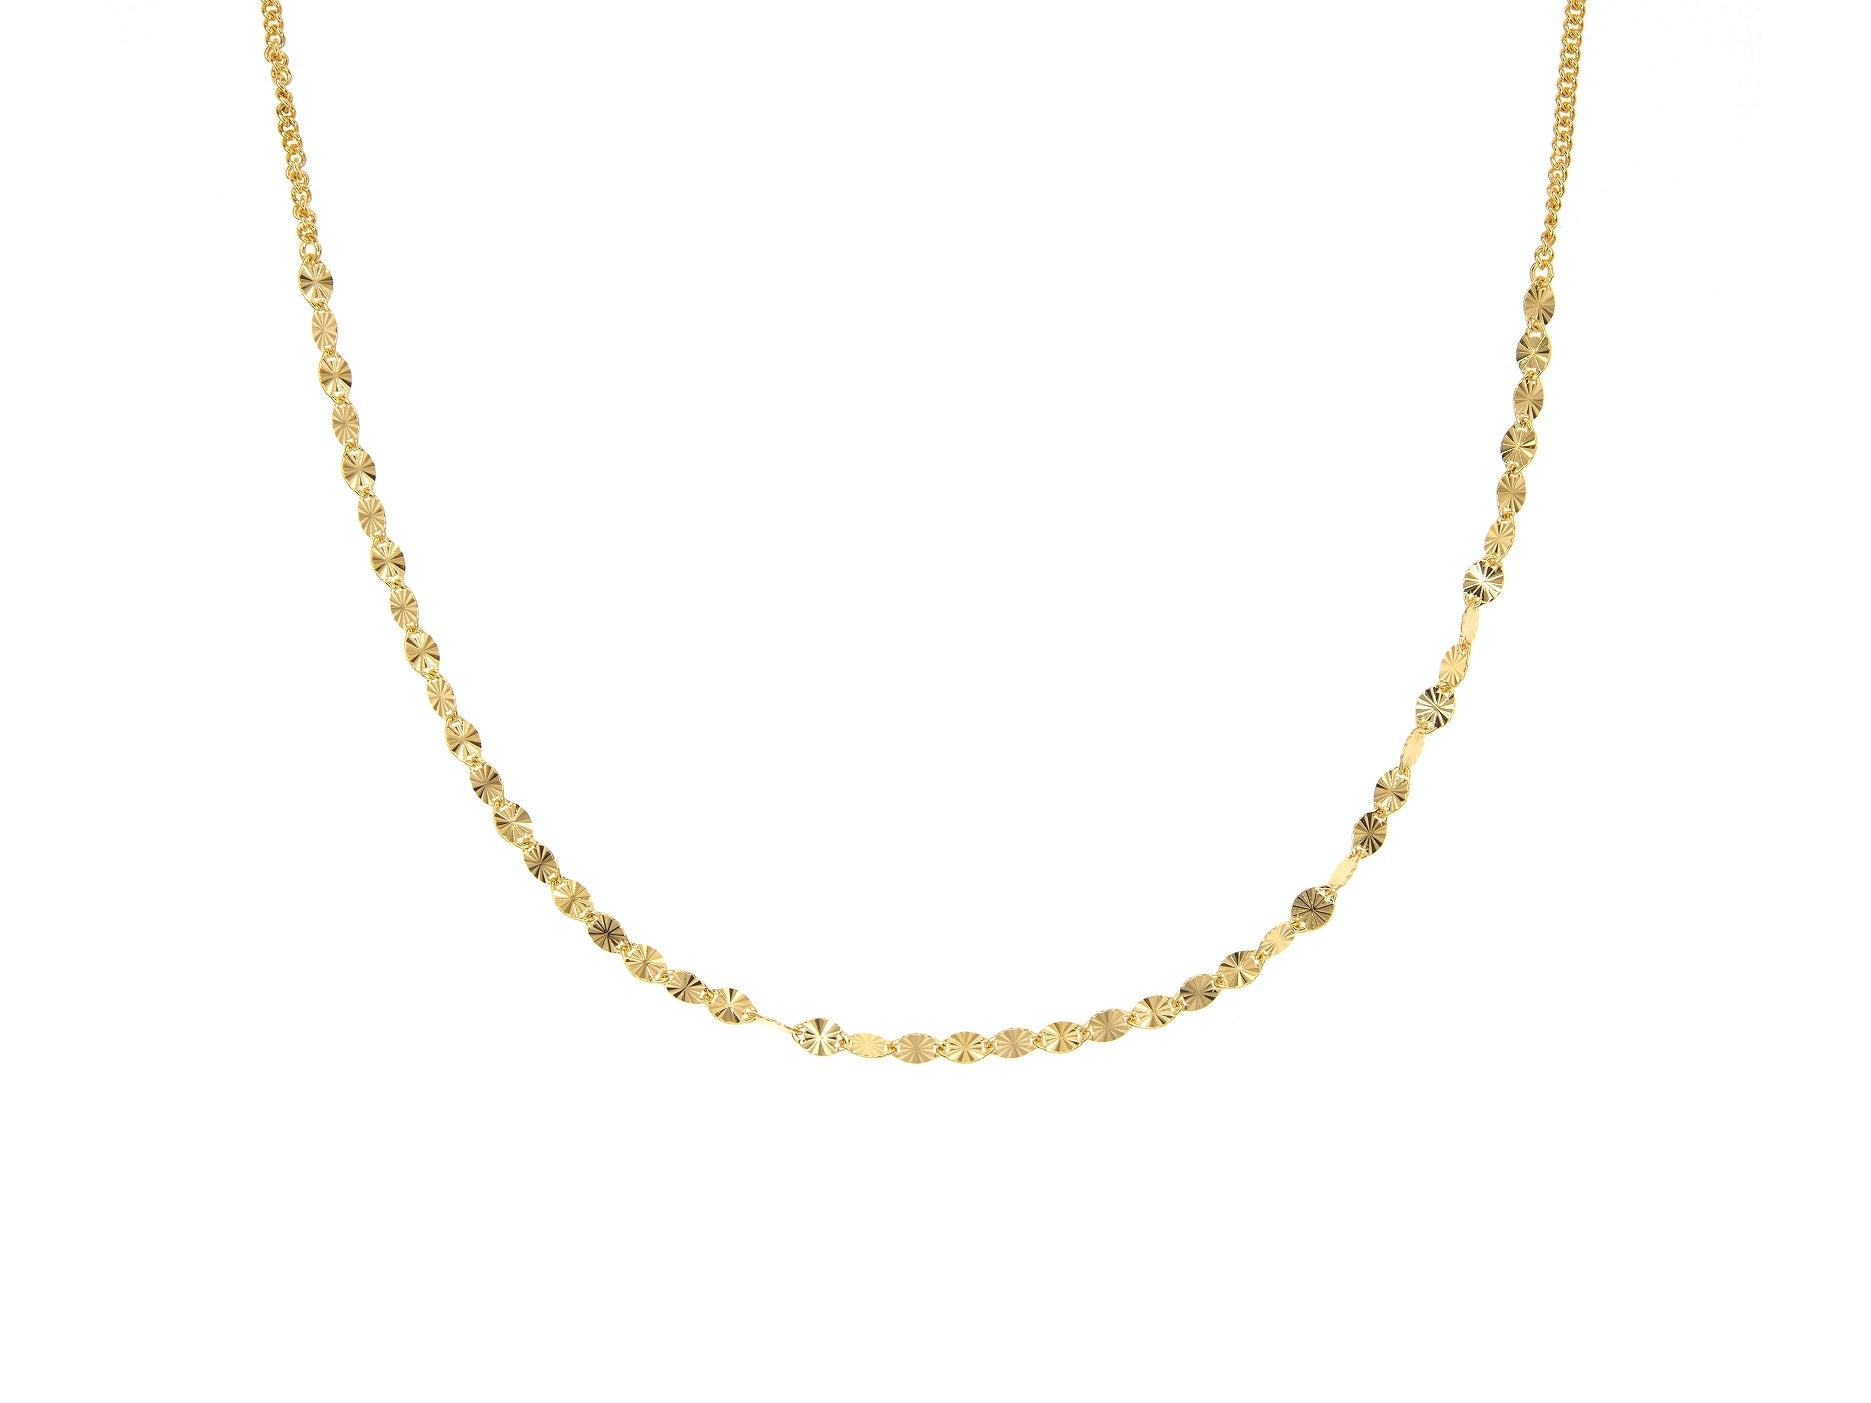 Juliet choker, sterling silver, yellow gold plated